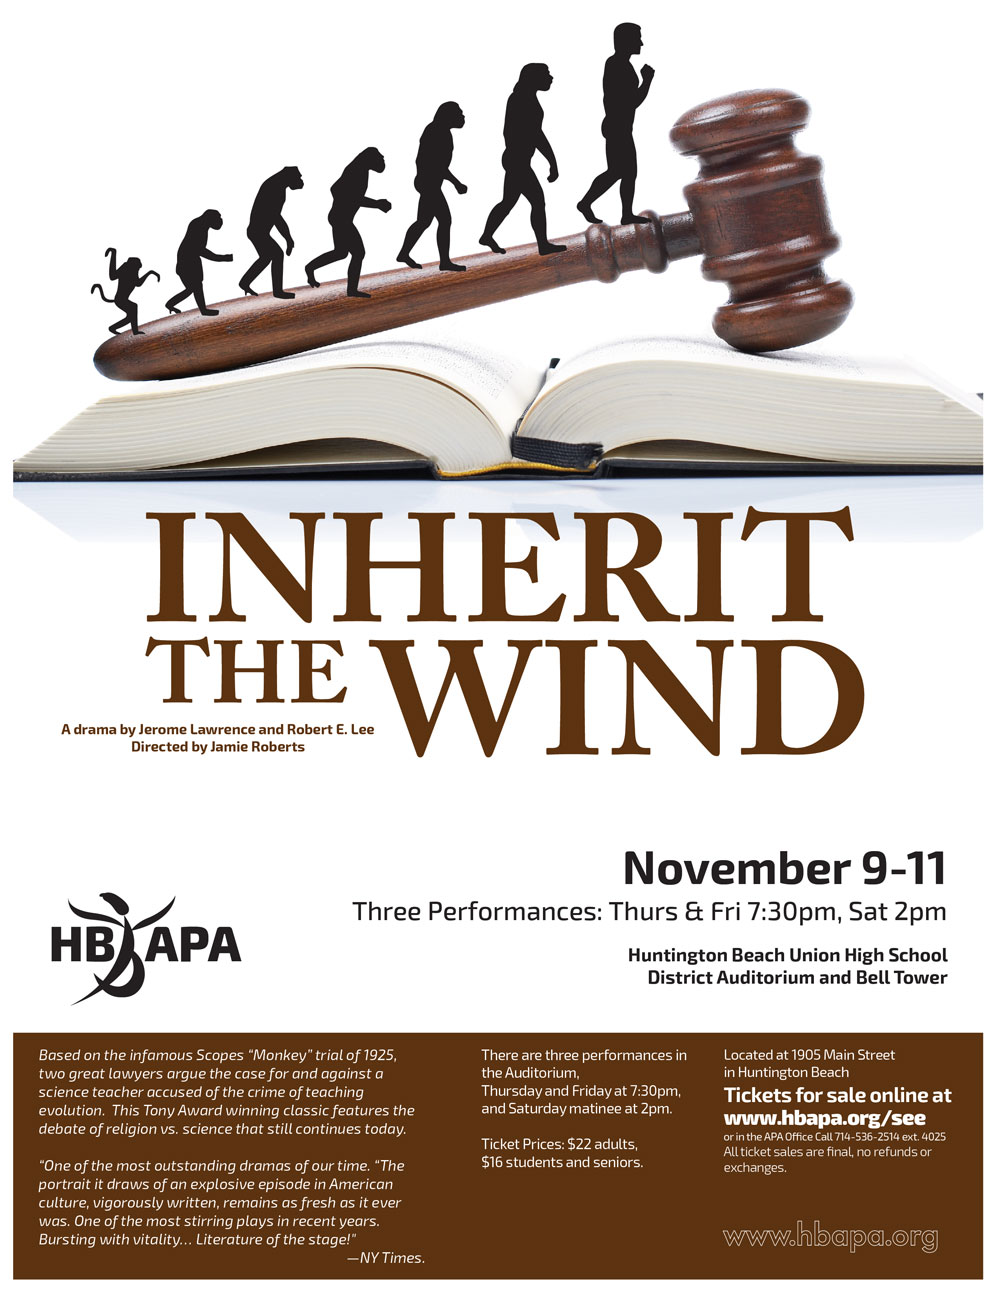 a literary analysis of inherit the wind by jerome lawrence